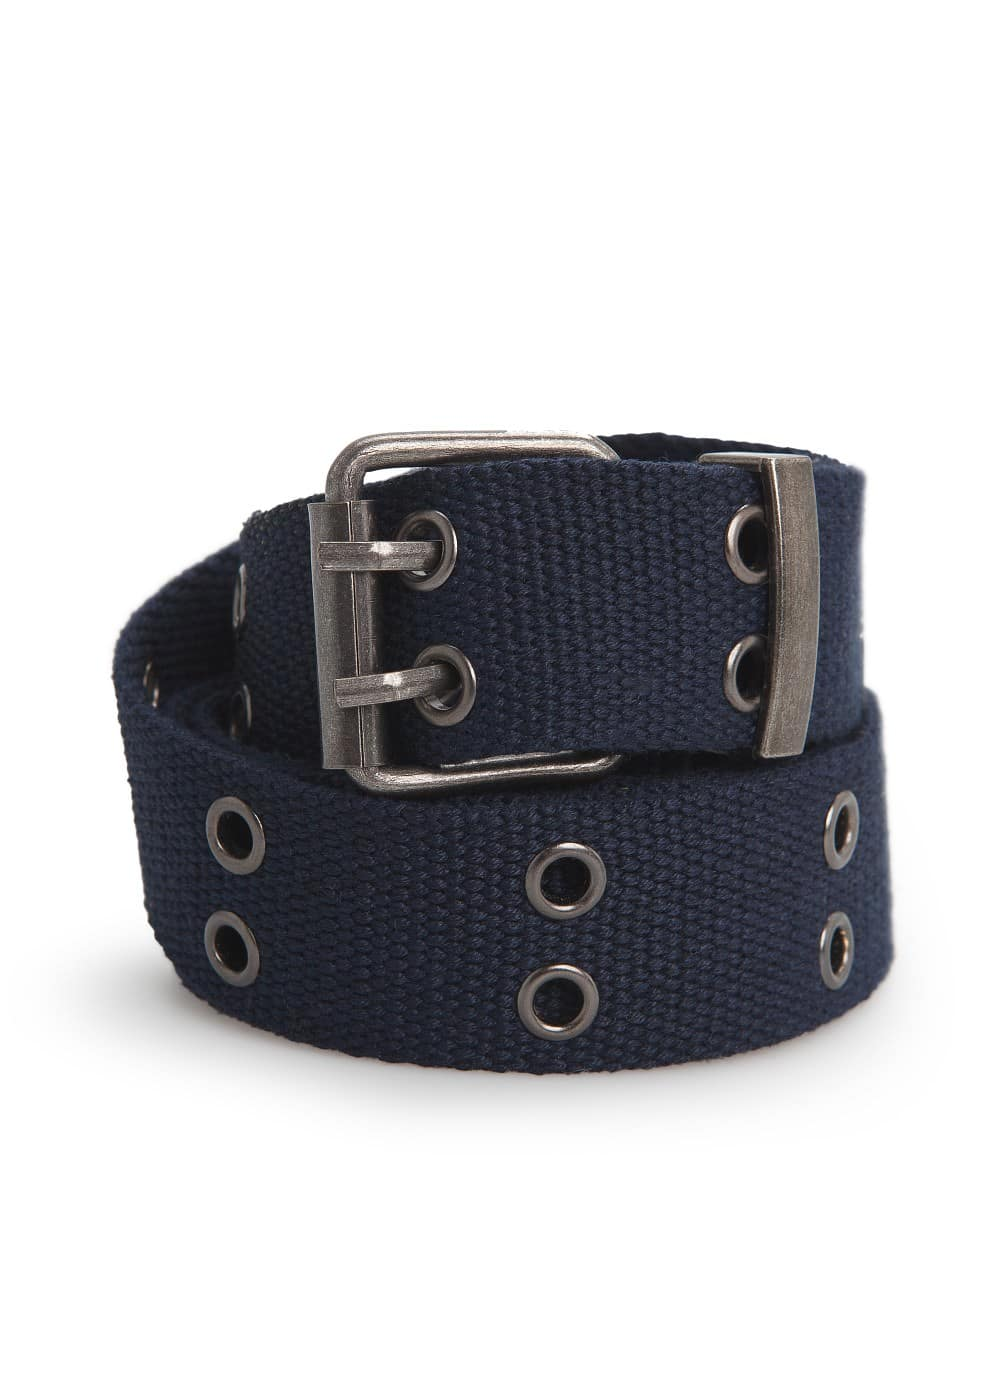 Eyelet canvas belt